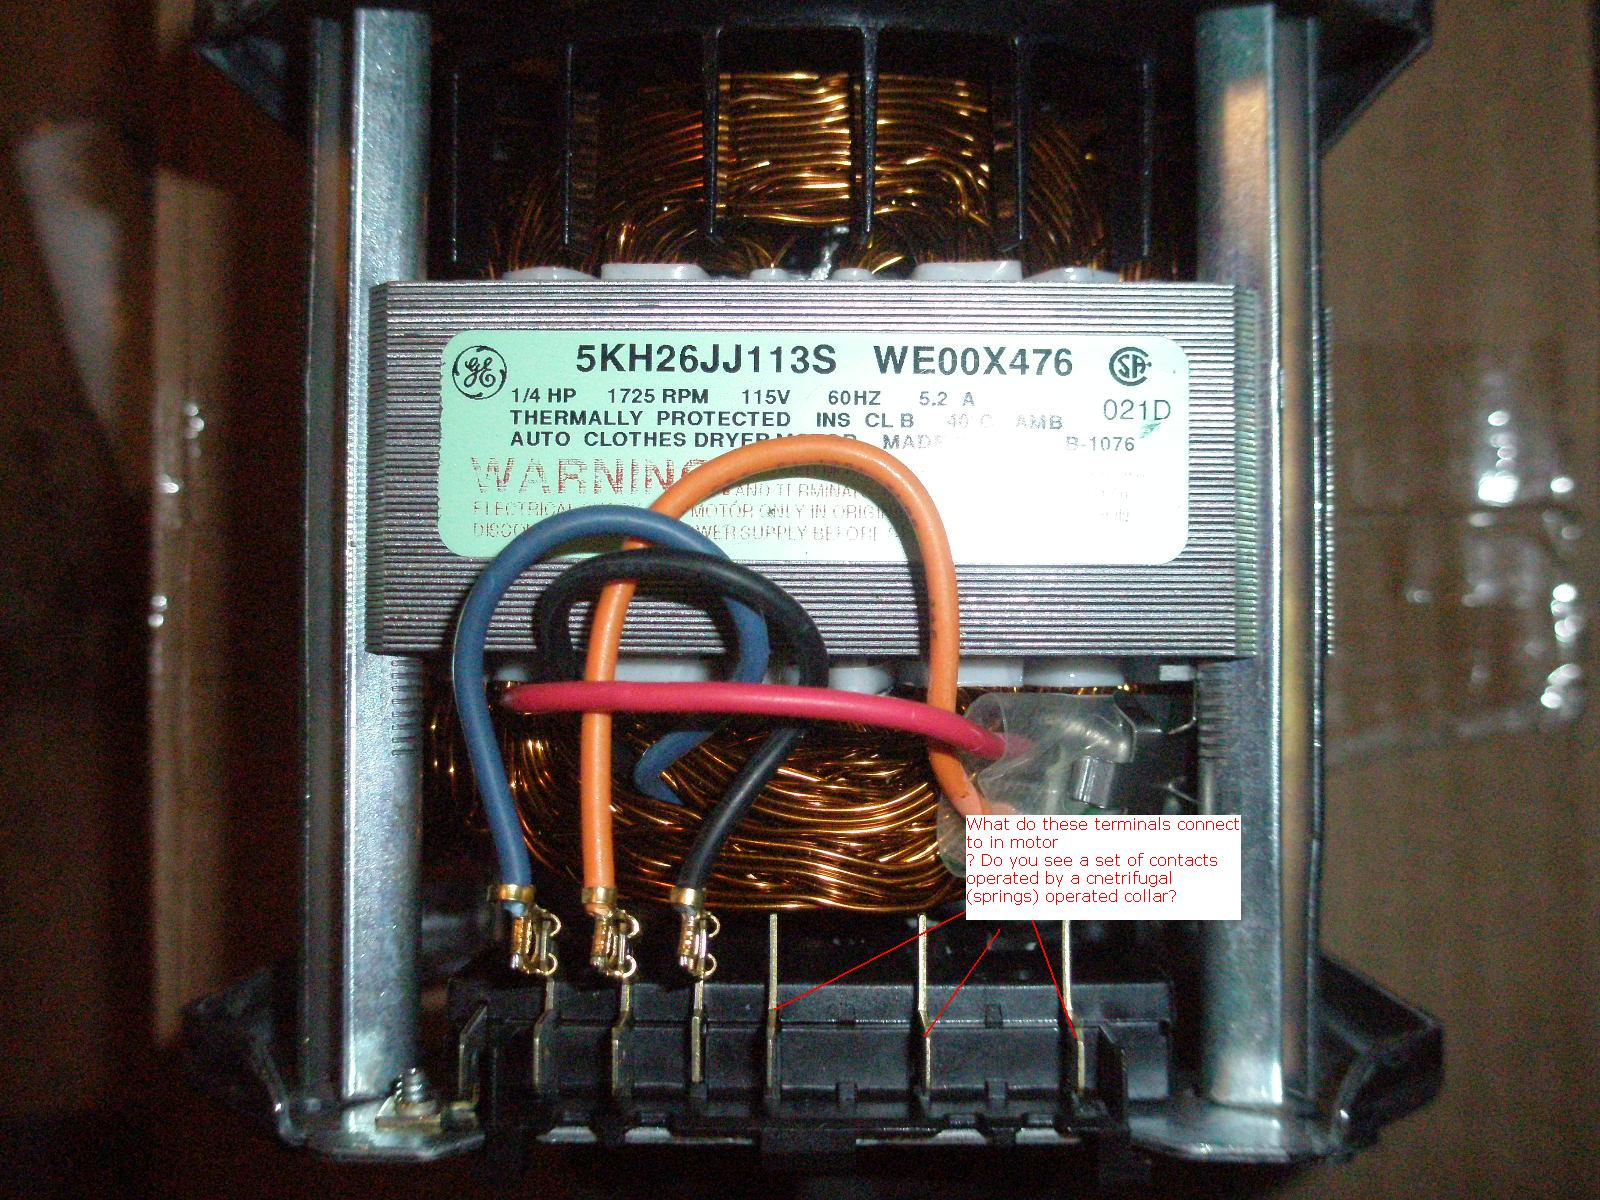 2010 12 31_200751_2010 12 31_193447_new_motor i have a replacement motor we00x476, for my ge dryer, but the ge dryer motor wiring diagram at eliteediting.co